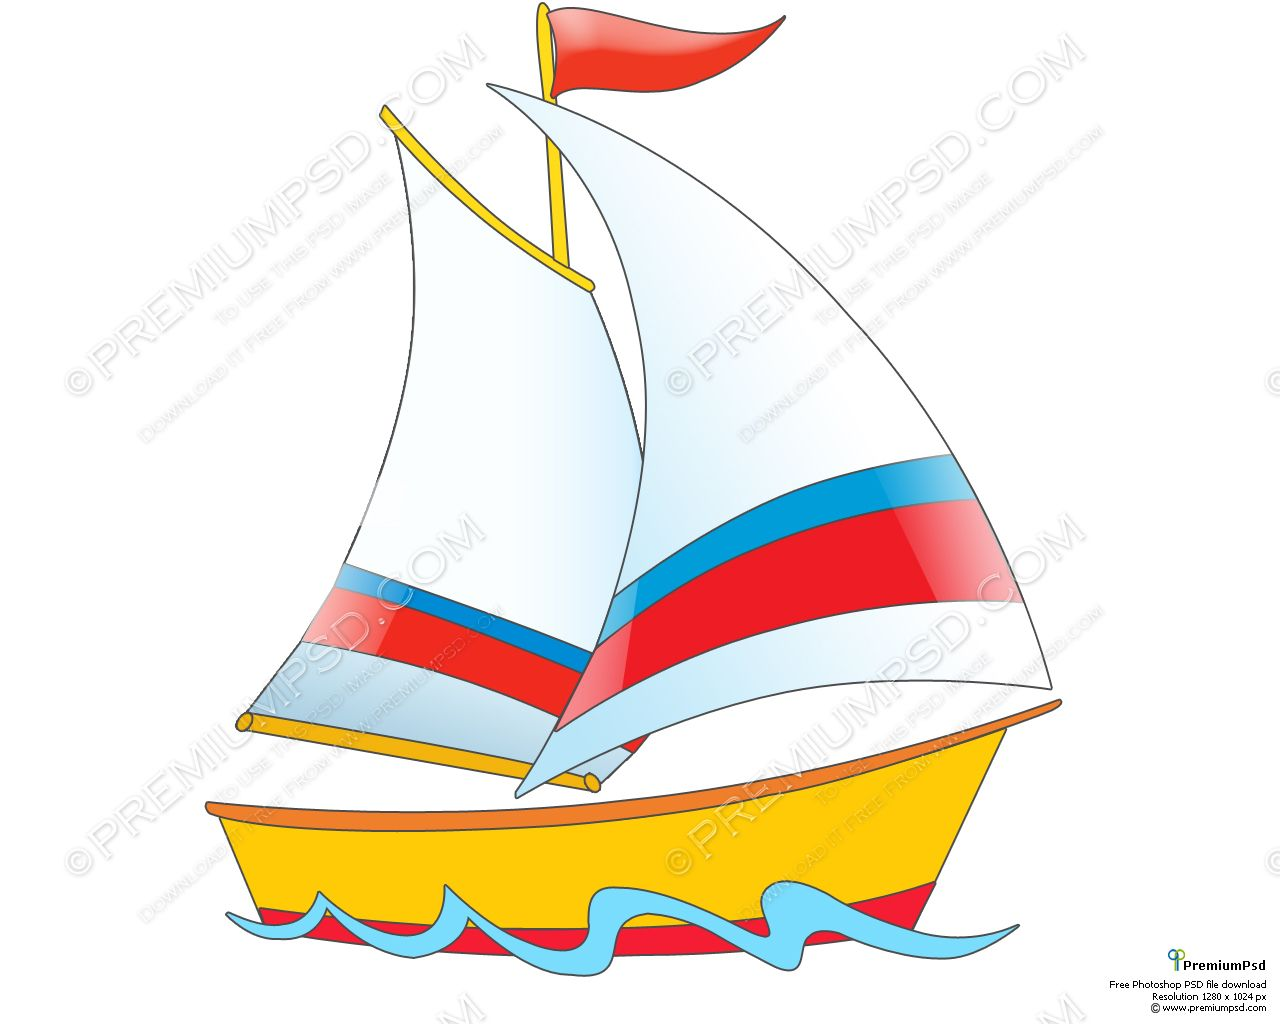 Cartoon Boat Ship Design PSD Download